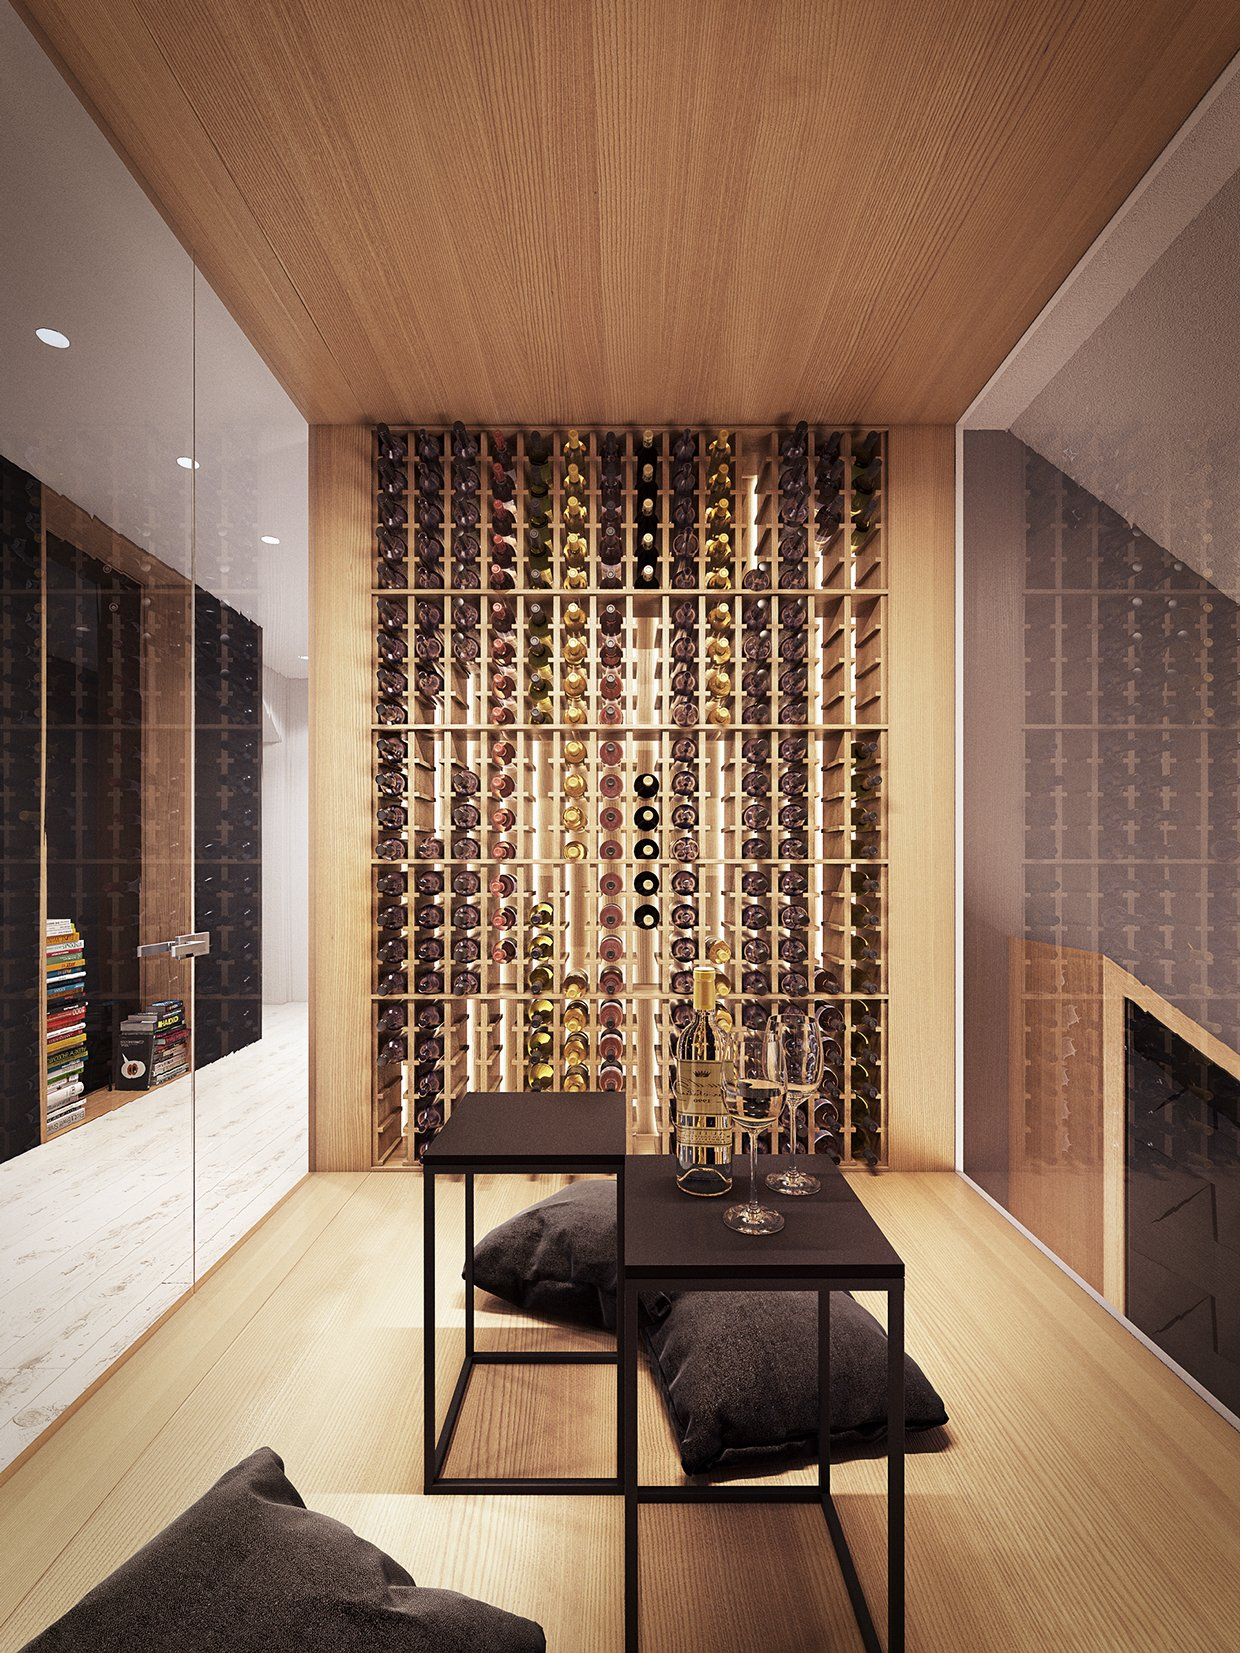 Wine cellar design interior design ideas for Home wine cellar designs